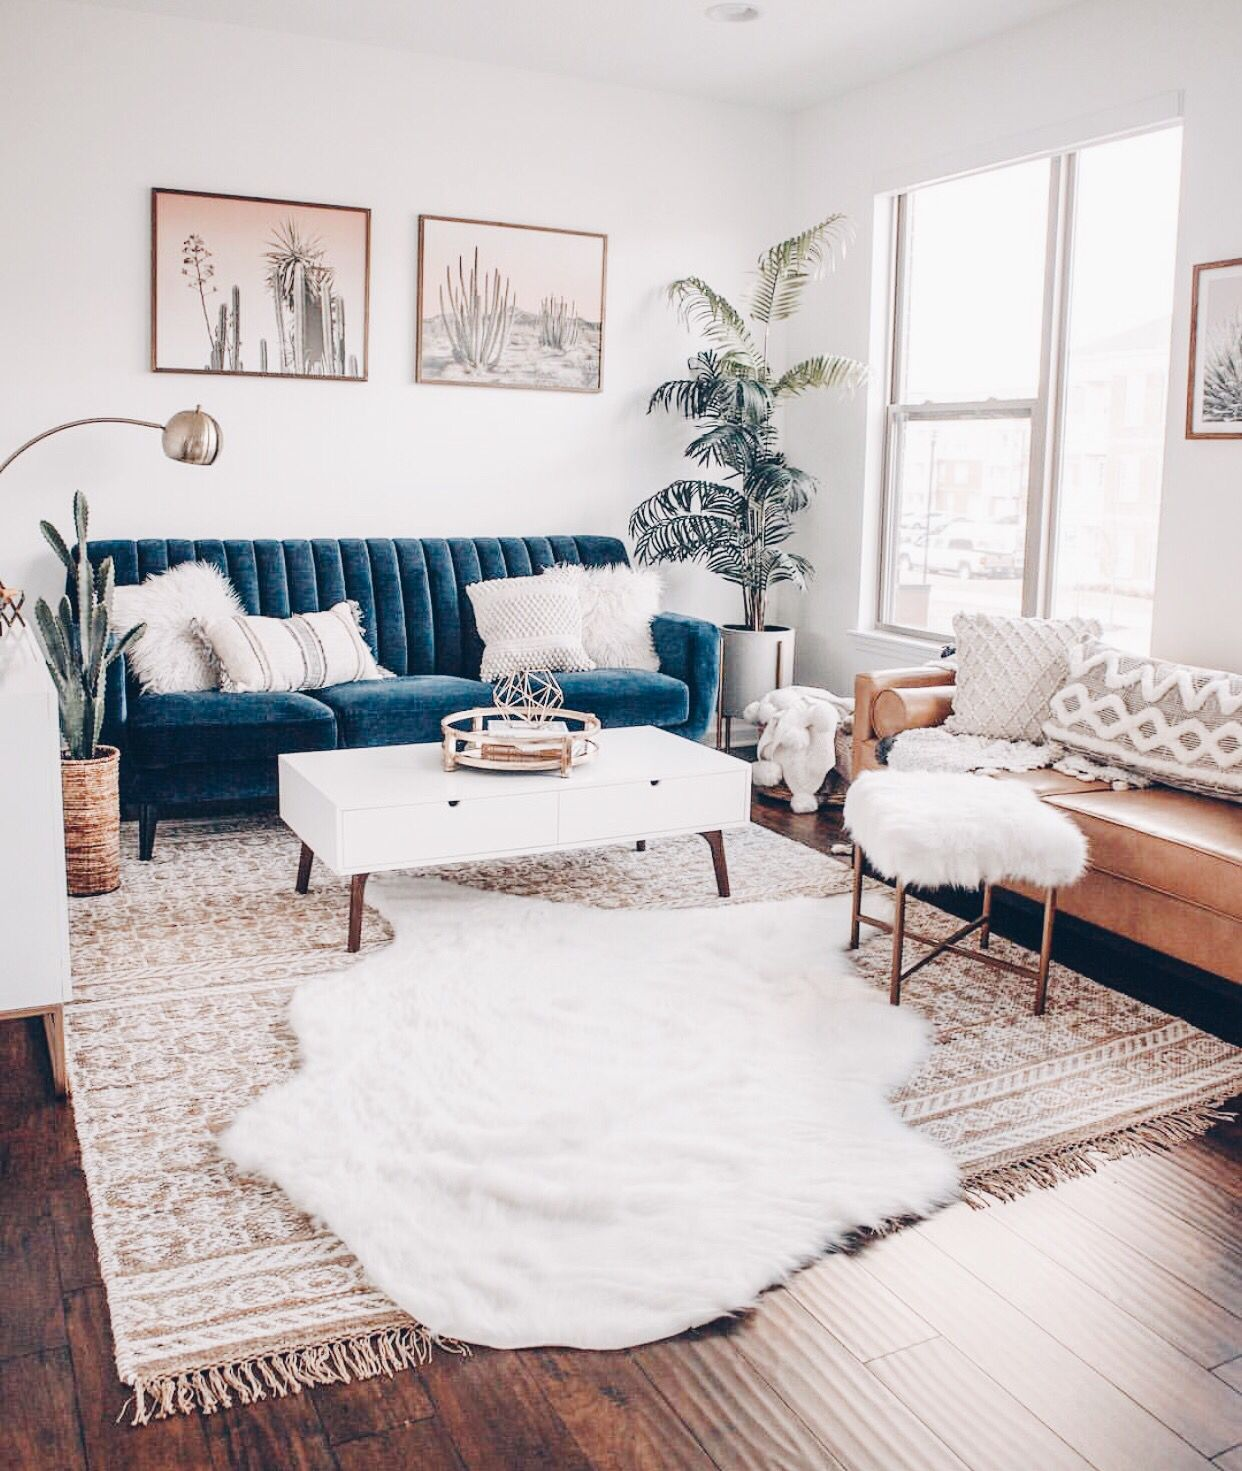 Pin By Carlee Jones On H O M E In 2019 Living Room